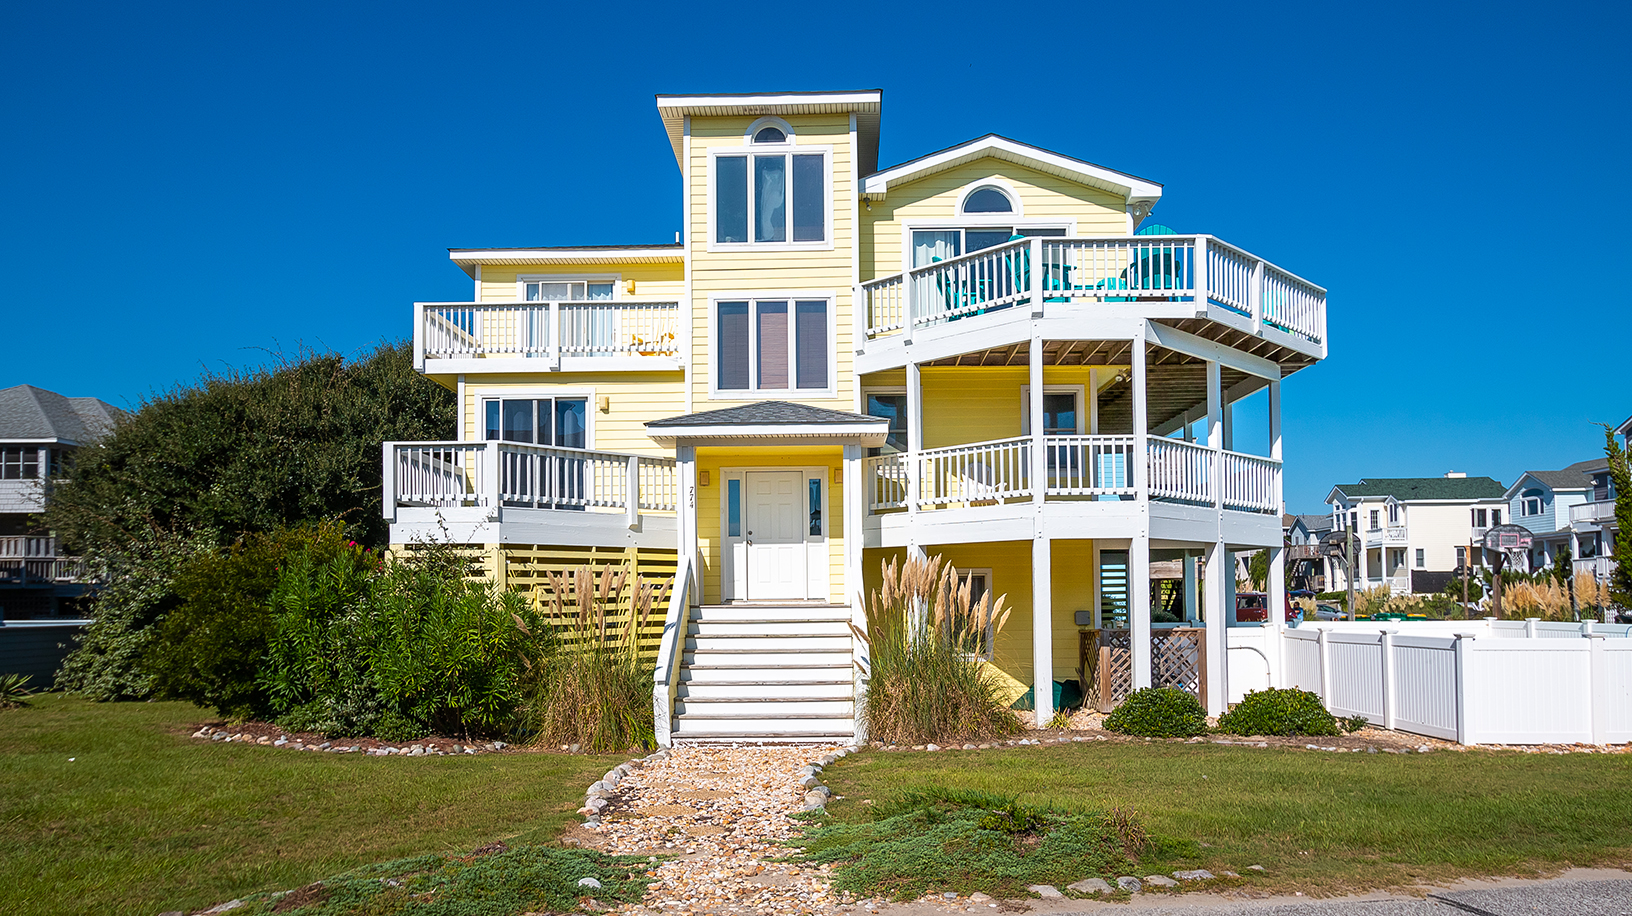 The Crown Jewel Vacation Rental